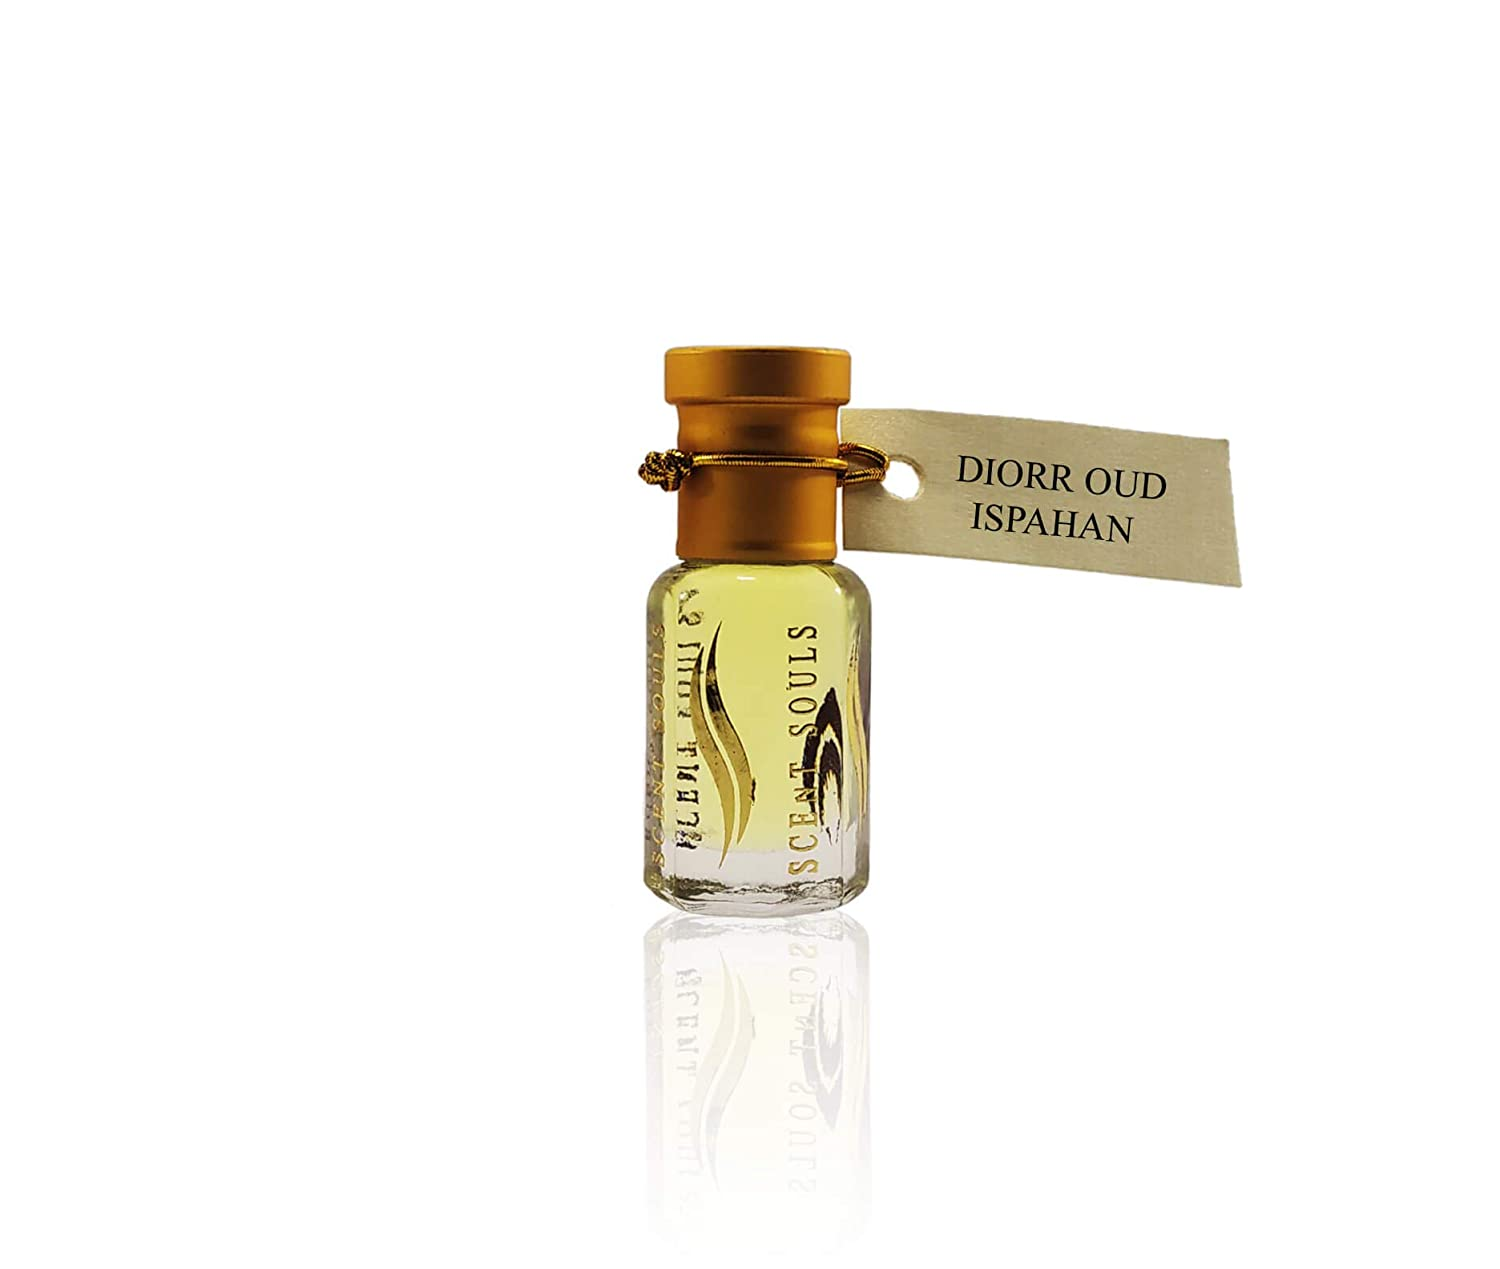 a85c959e Scent Souls Diorr Oud Ispahan Perfume/Fragrance Oil Roll-on Attar for Men  and Women , 6 ml